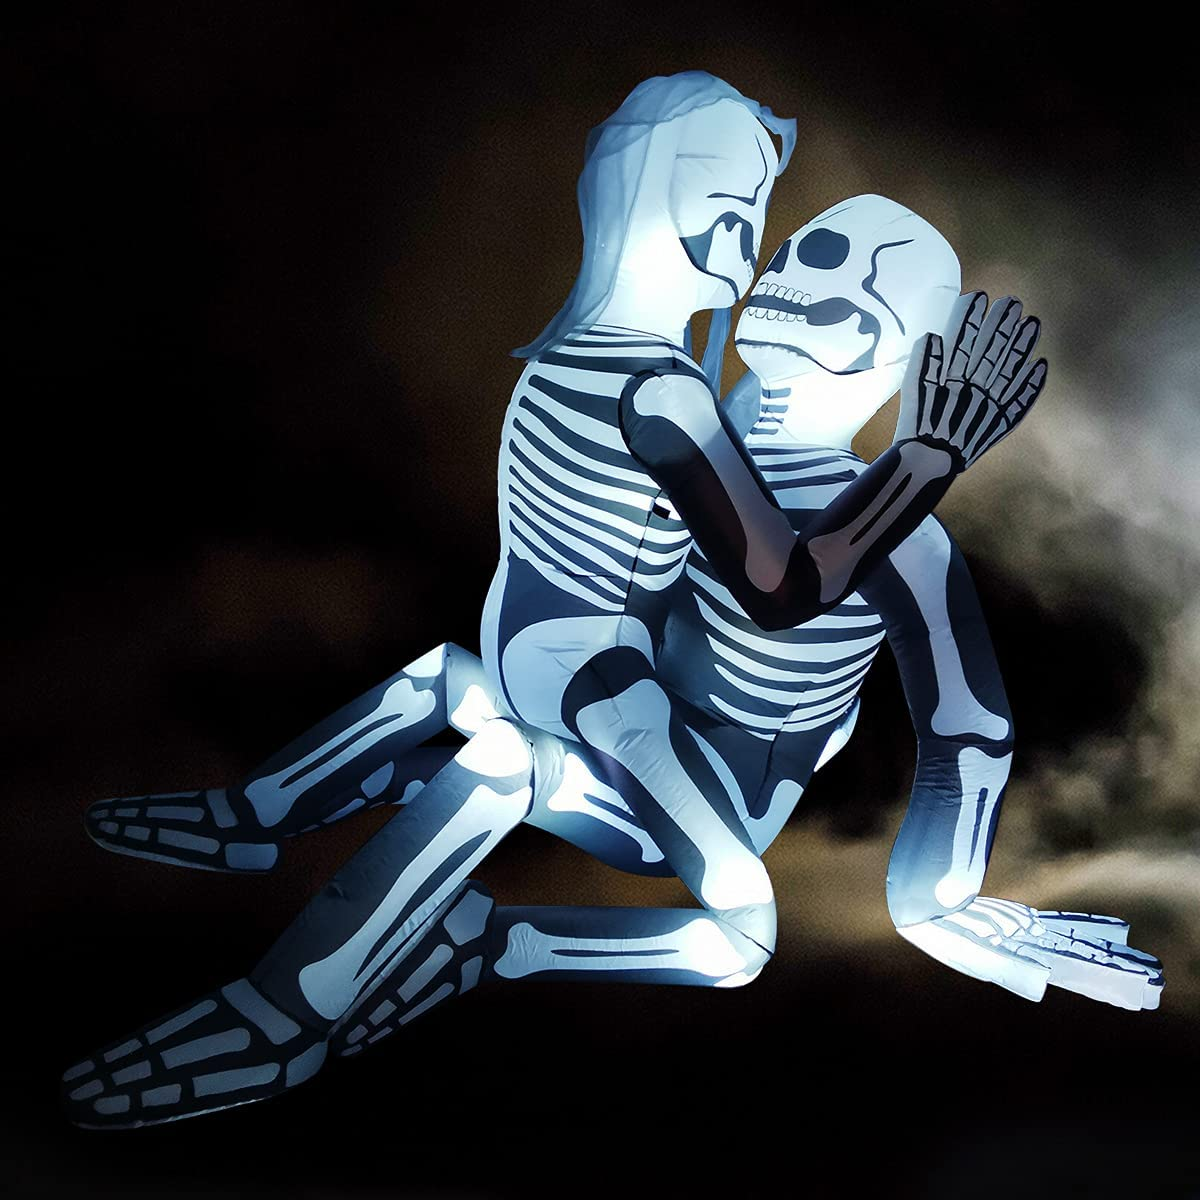 GOOSH 5.5 FT Halloween Inflatable Skeleton Challenge the lowest price of Japan Couple Lovers trend rank Outdoor